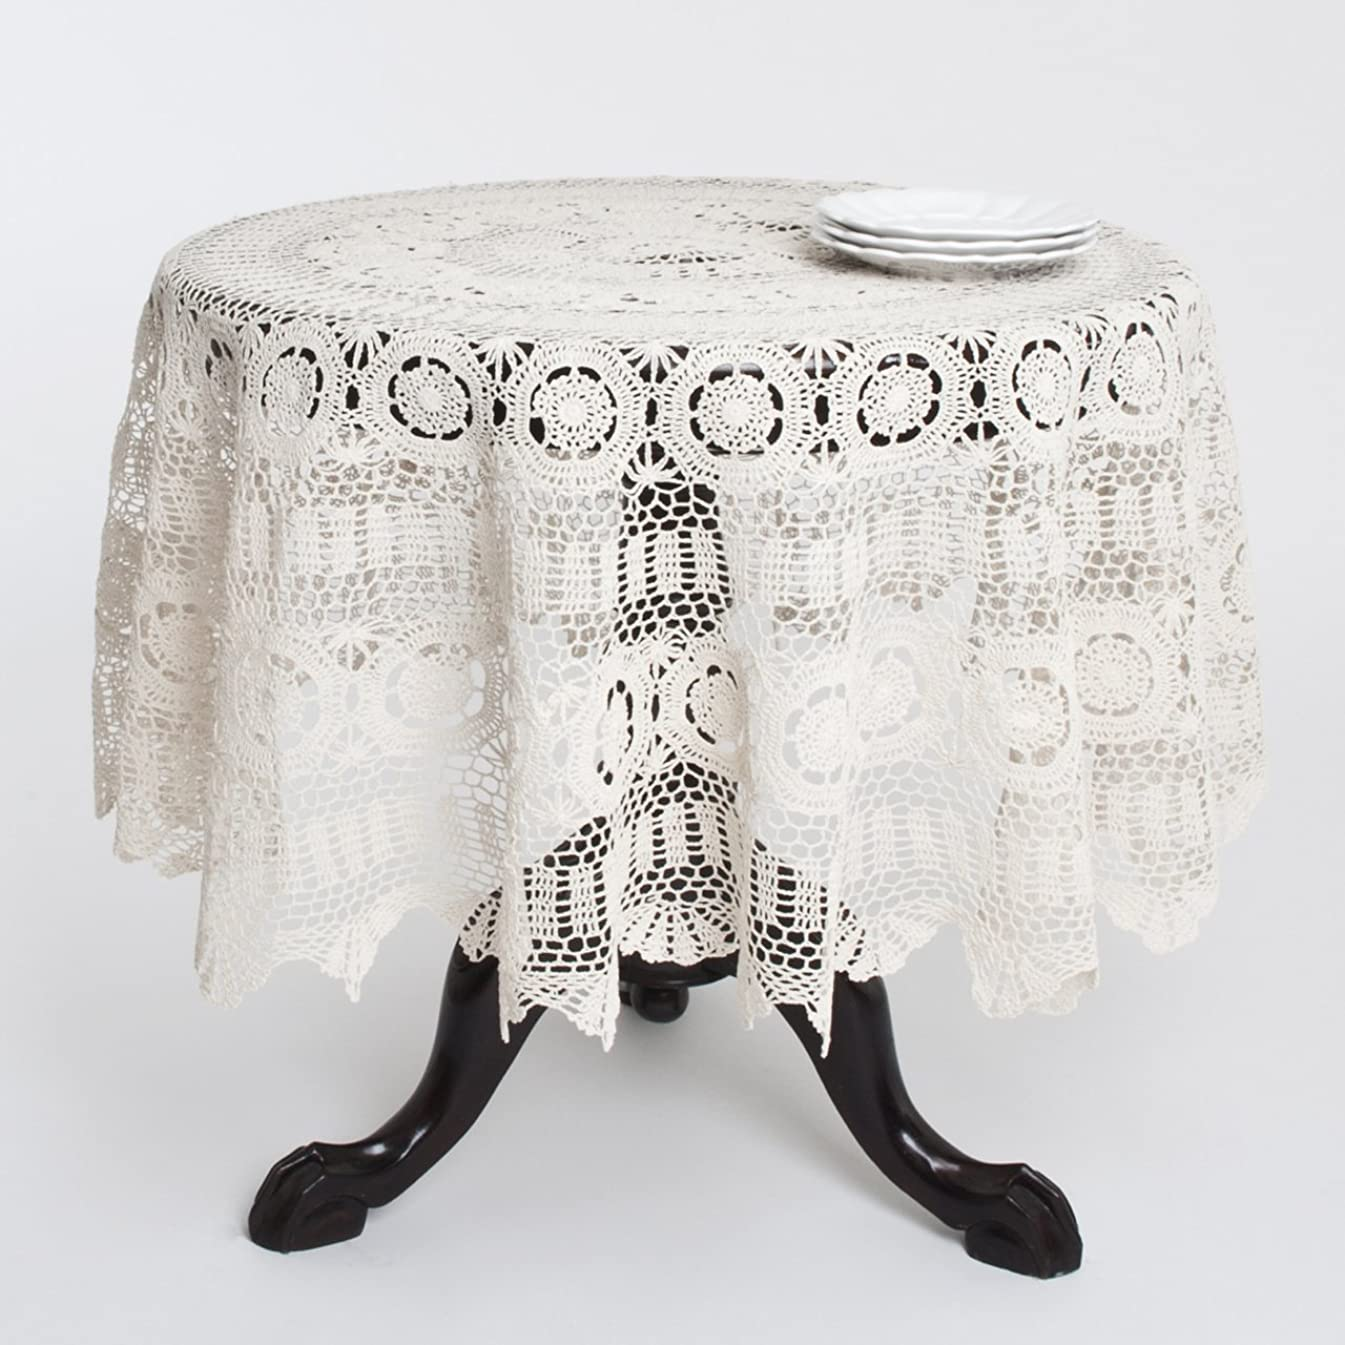 HANDMADE CROCHET LACE COTTON TABLELCOTH, ROUND